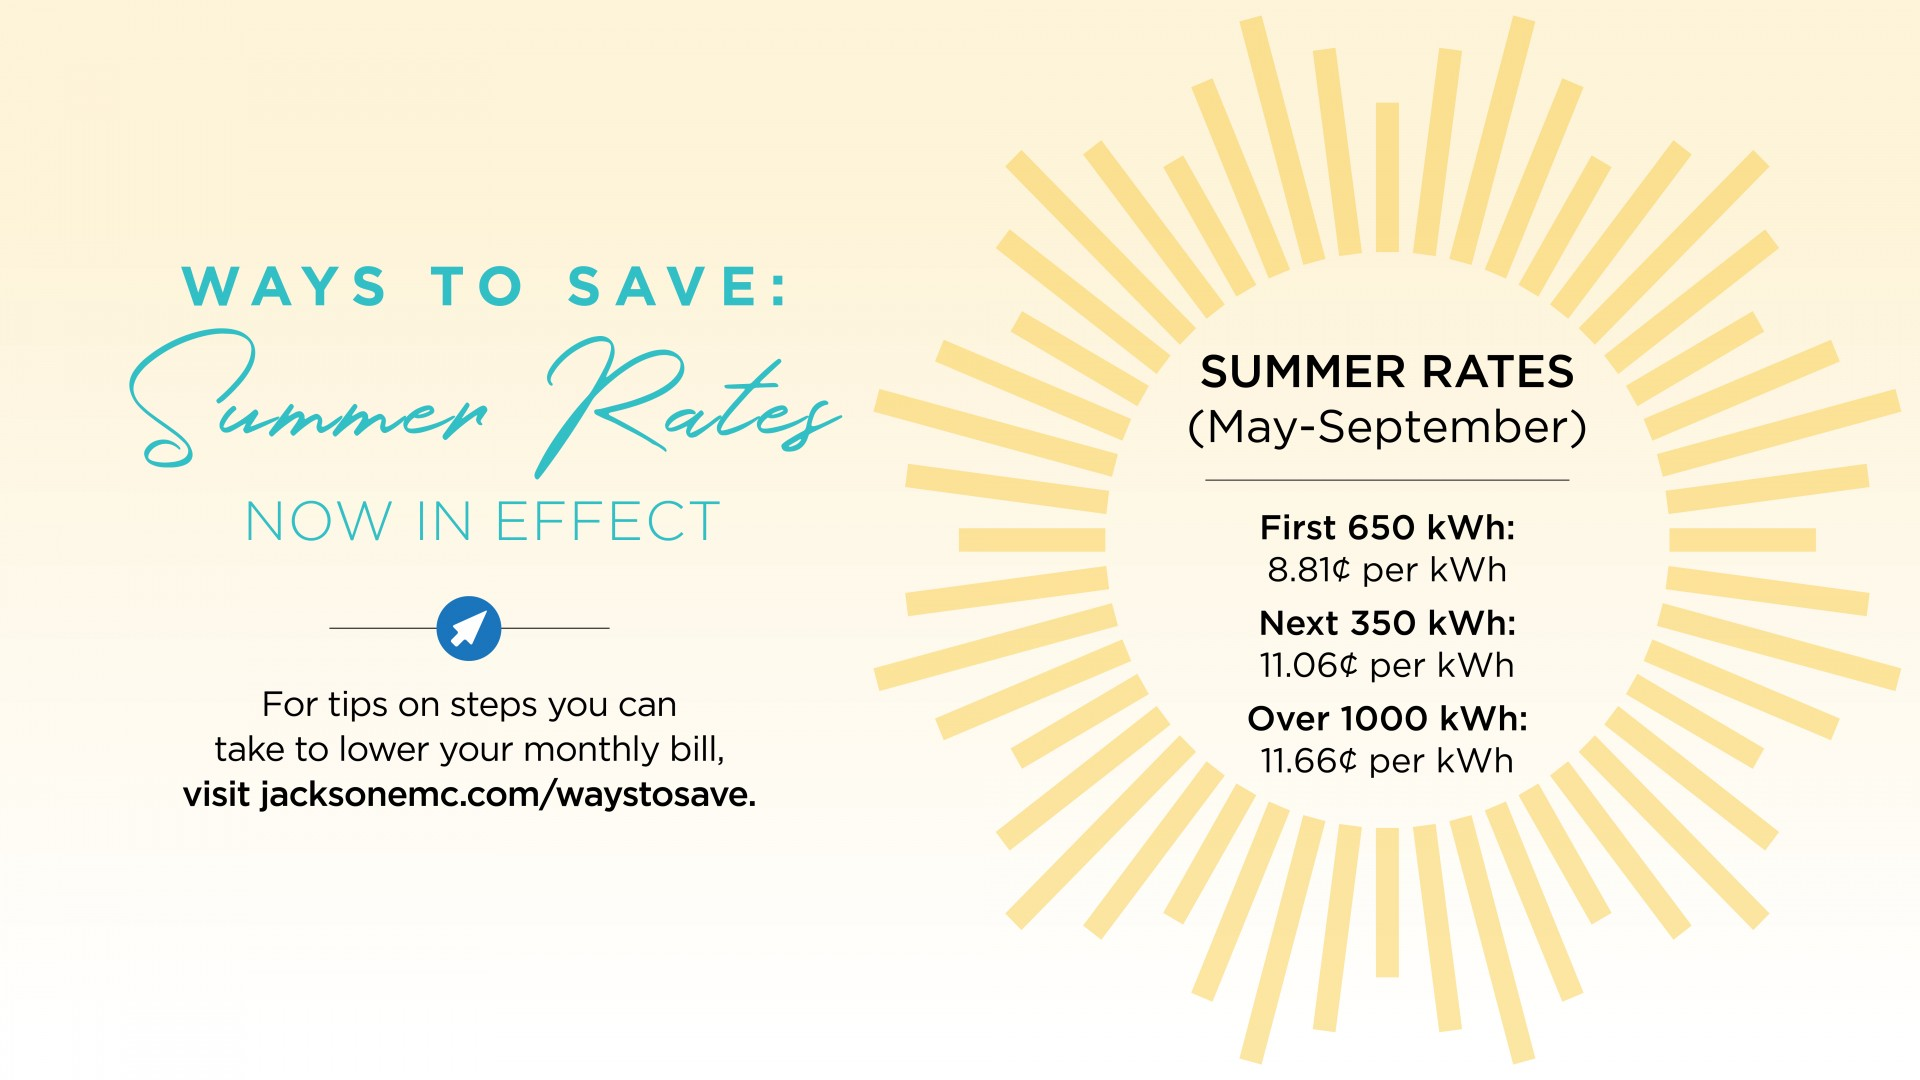 Summer Rates for 2018 in Effect